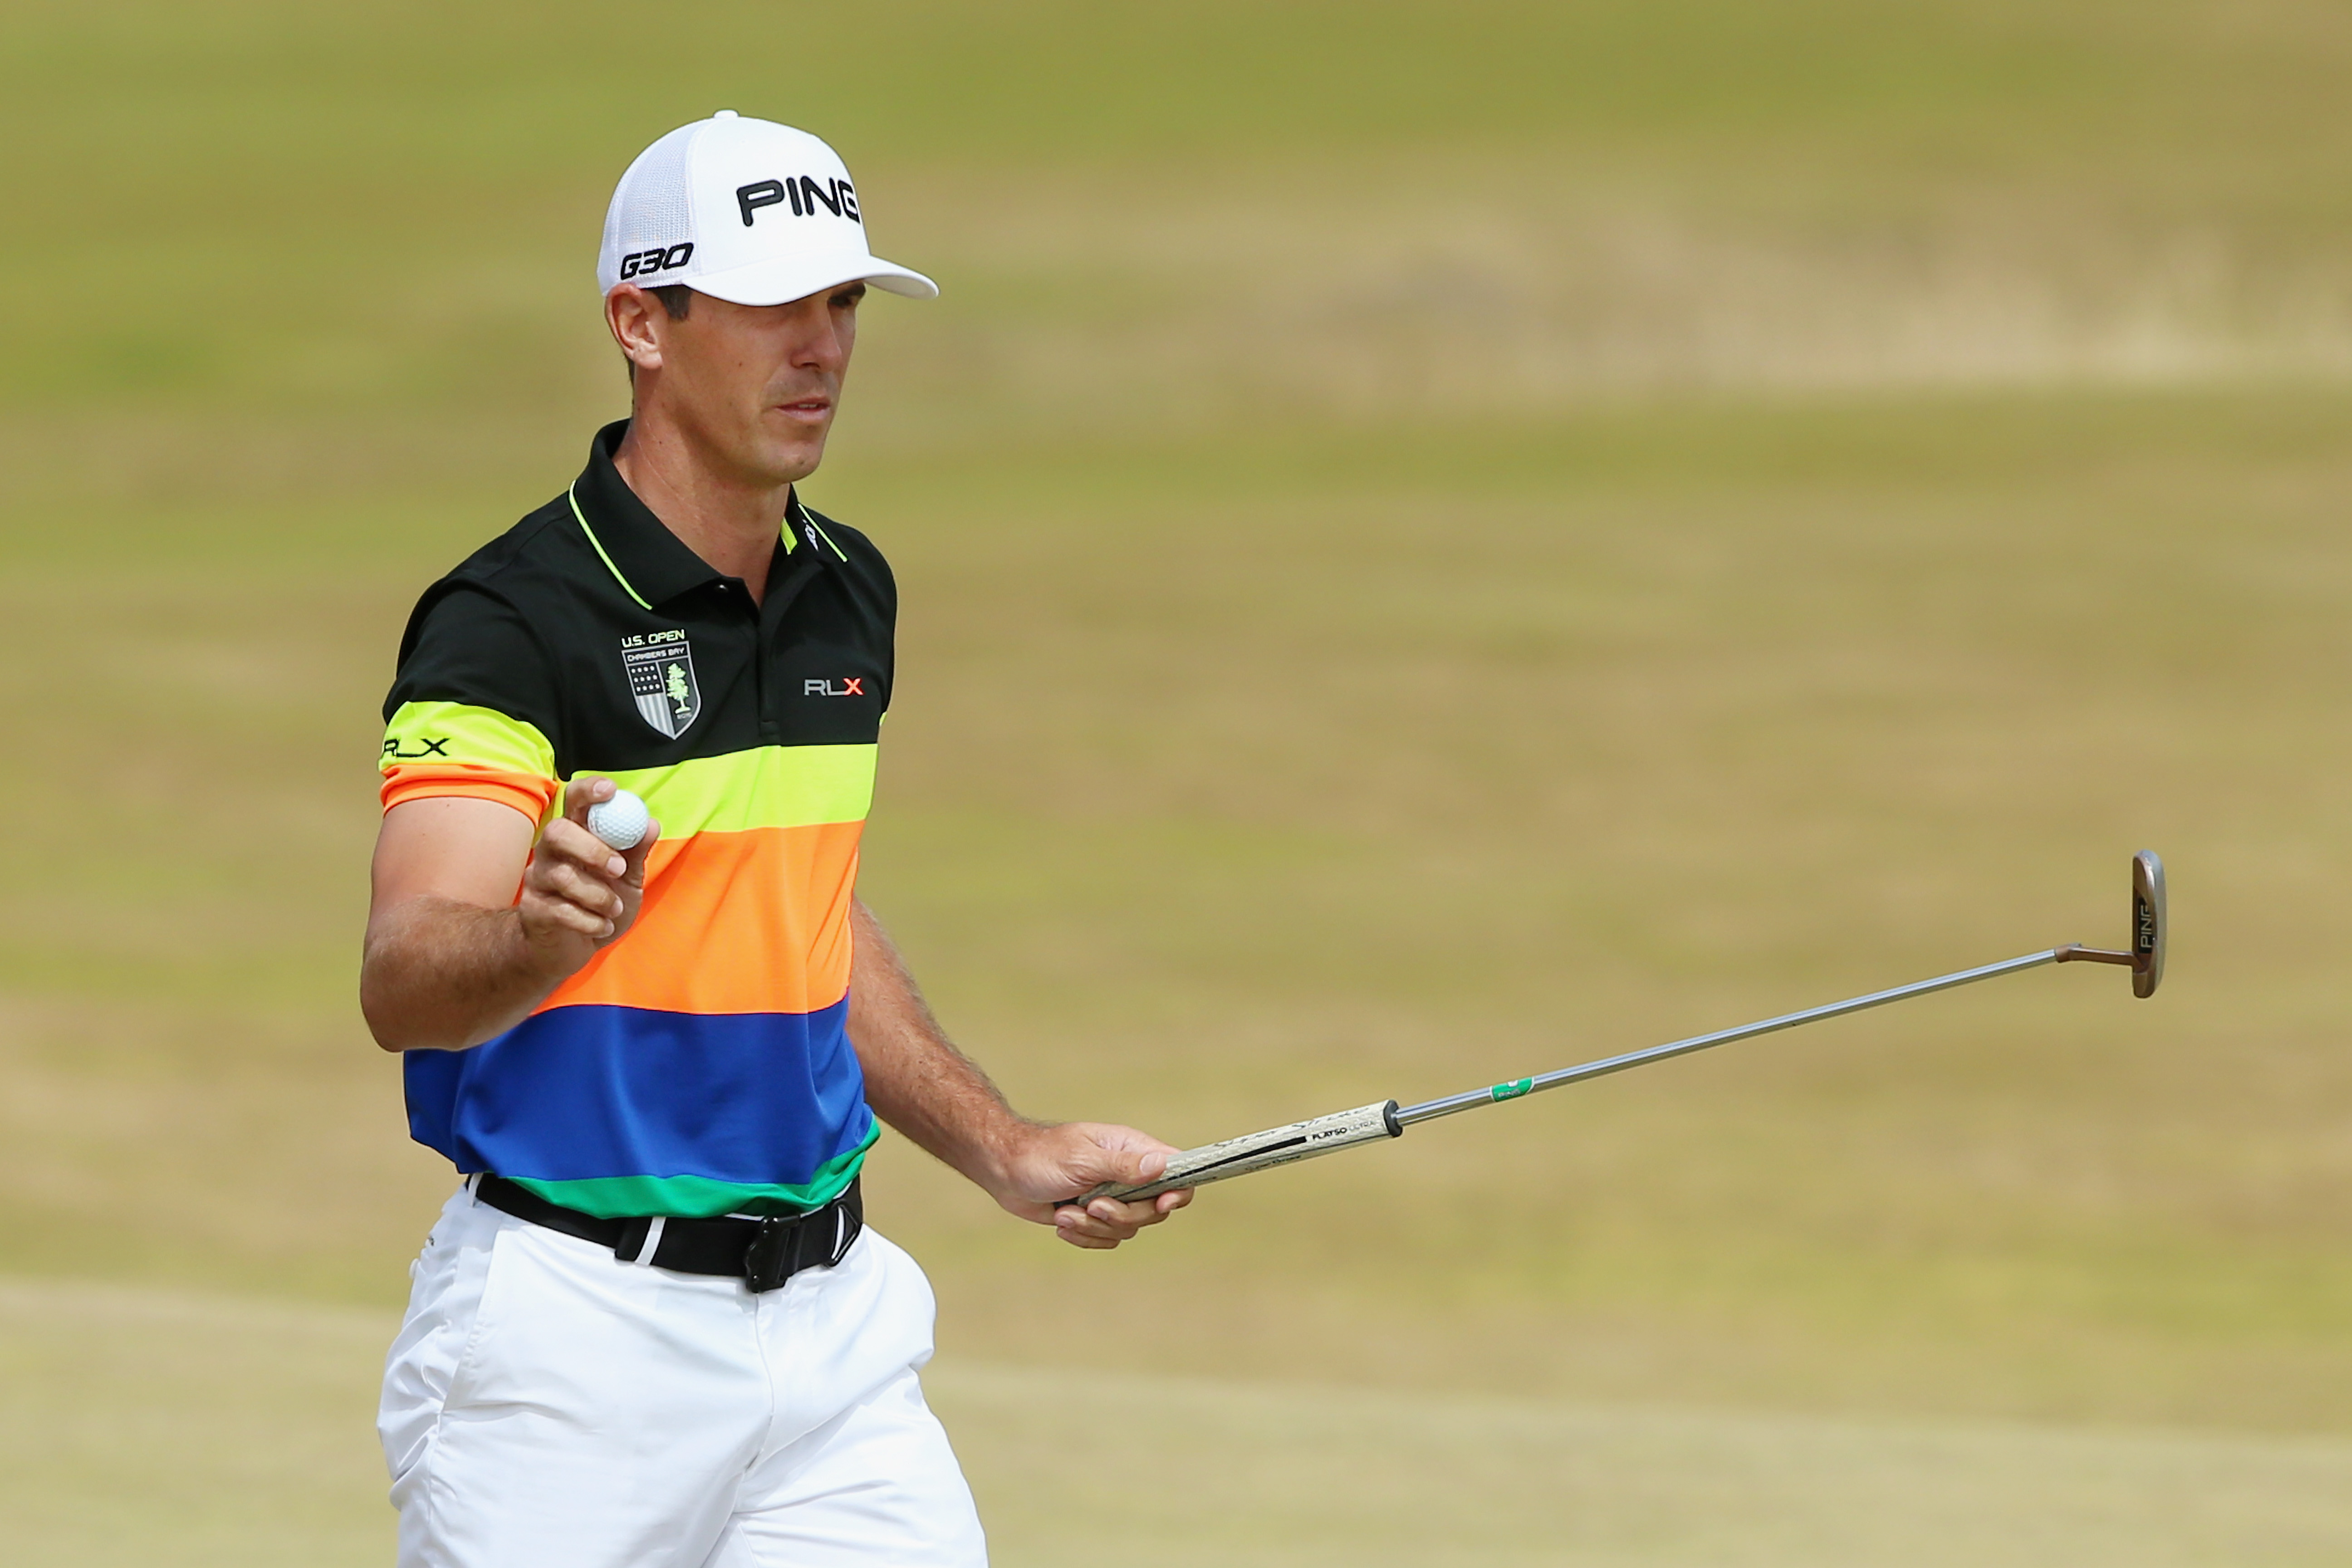 Billy Horschel implies USGA is lying about condition of 'worst greens he's ever putted on'